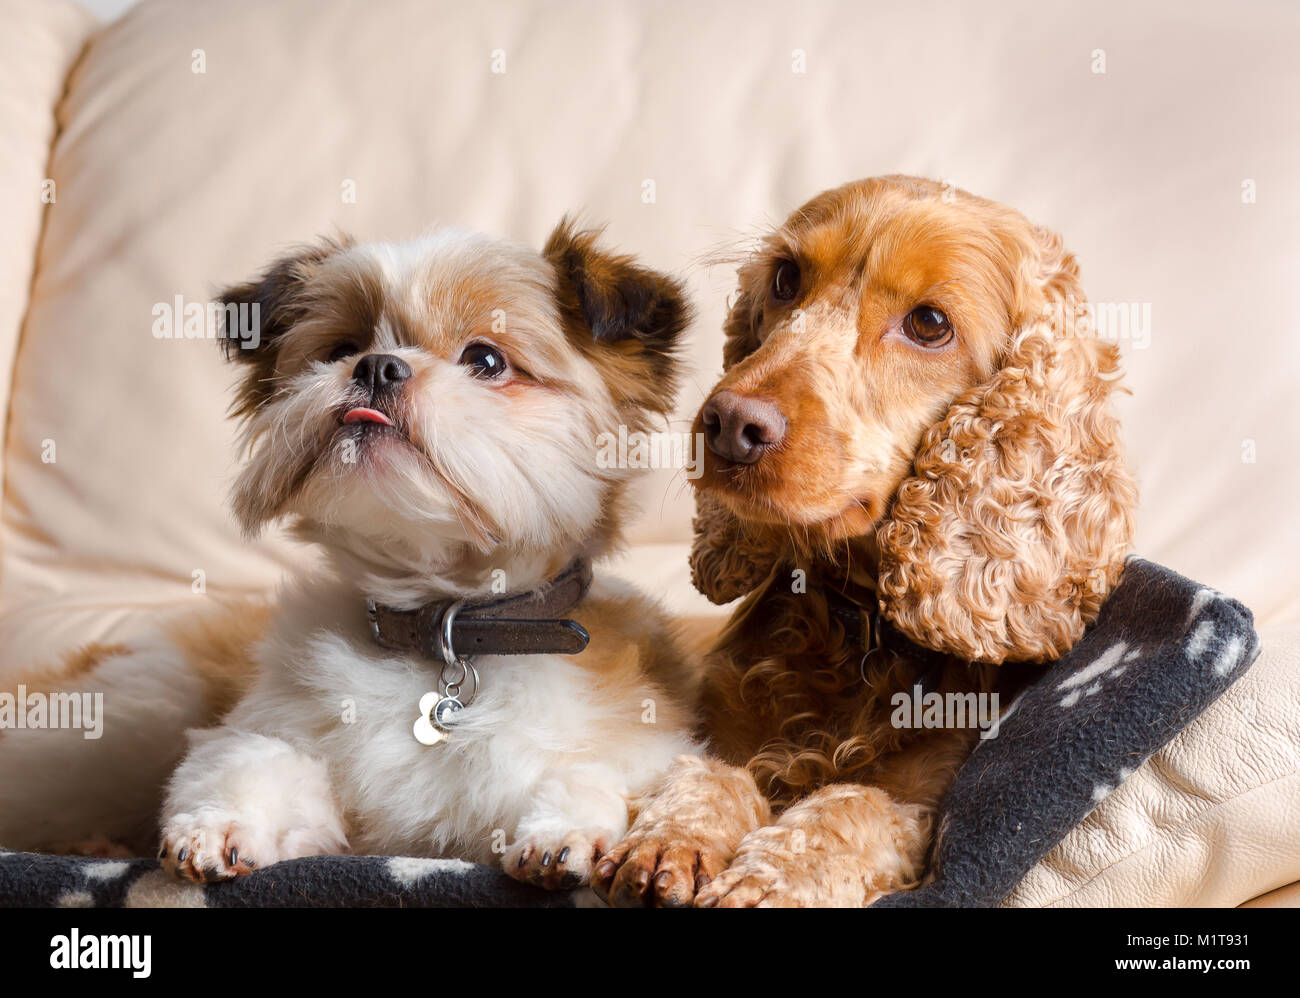 Indoor pet portrait: pomeranian shih tzu & red cocker spaniel, snuggled together on leather sofa in family home. - Stock Image